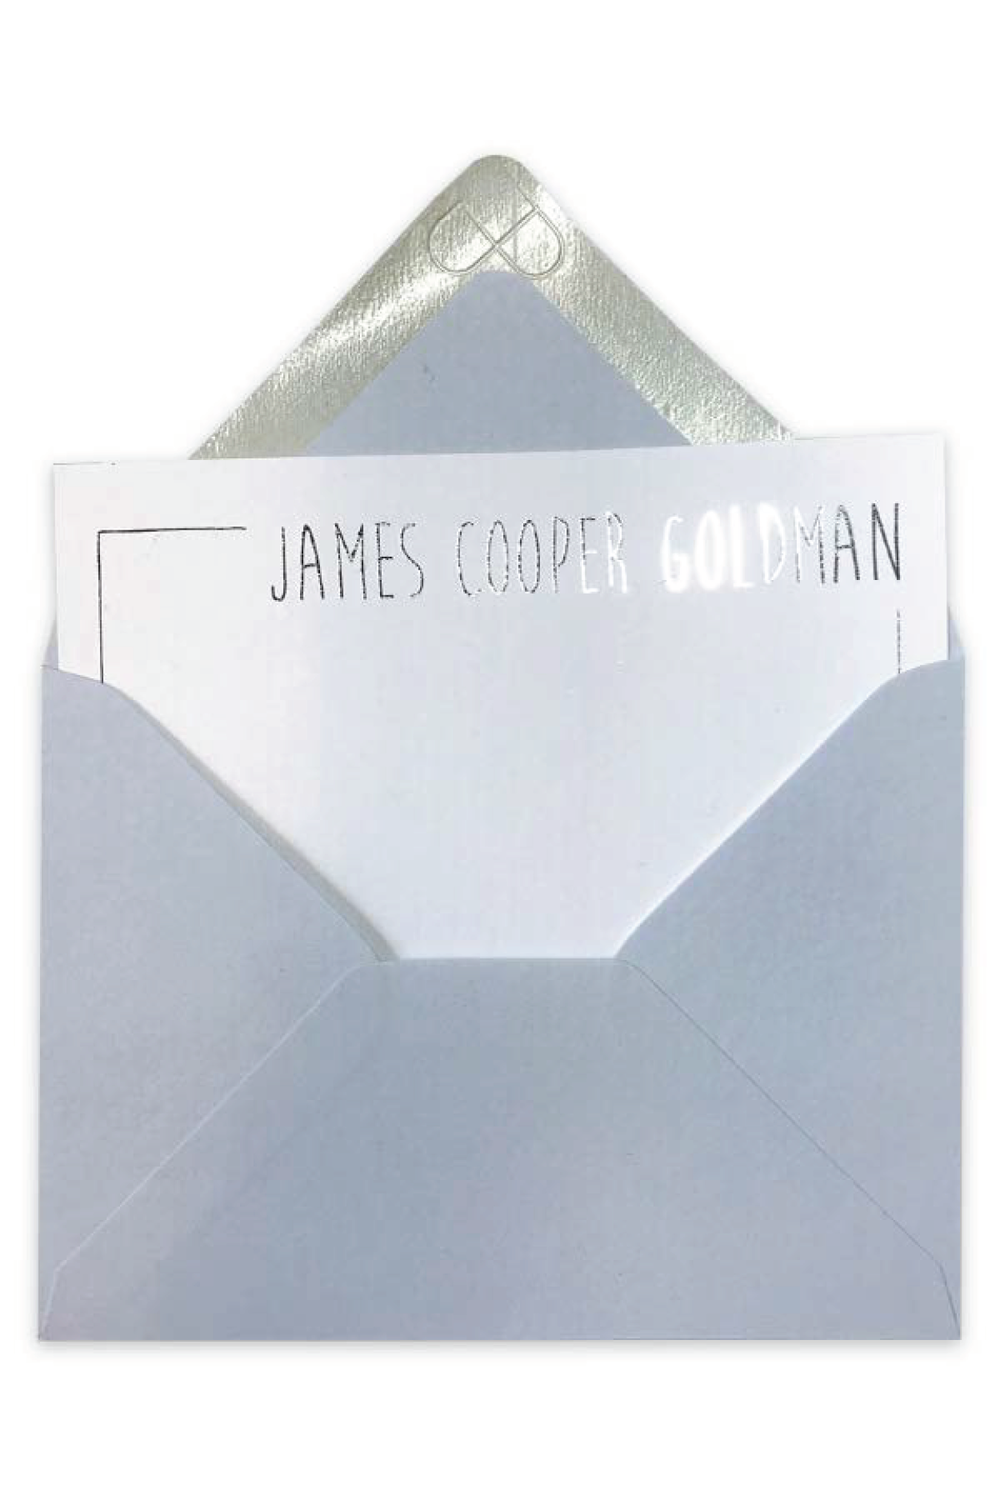 James Cooper Goldman-4.png